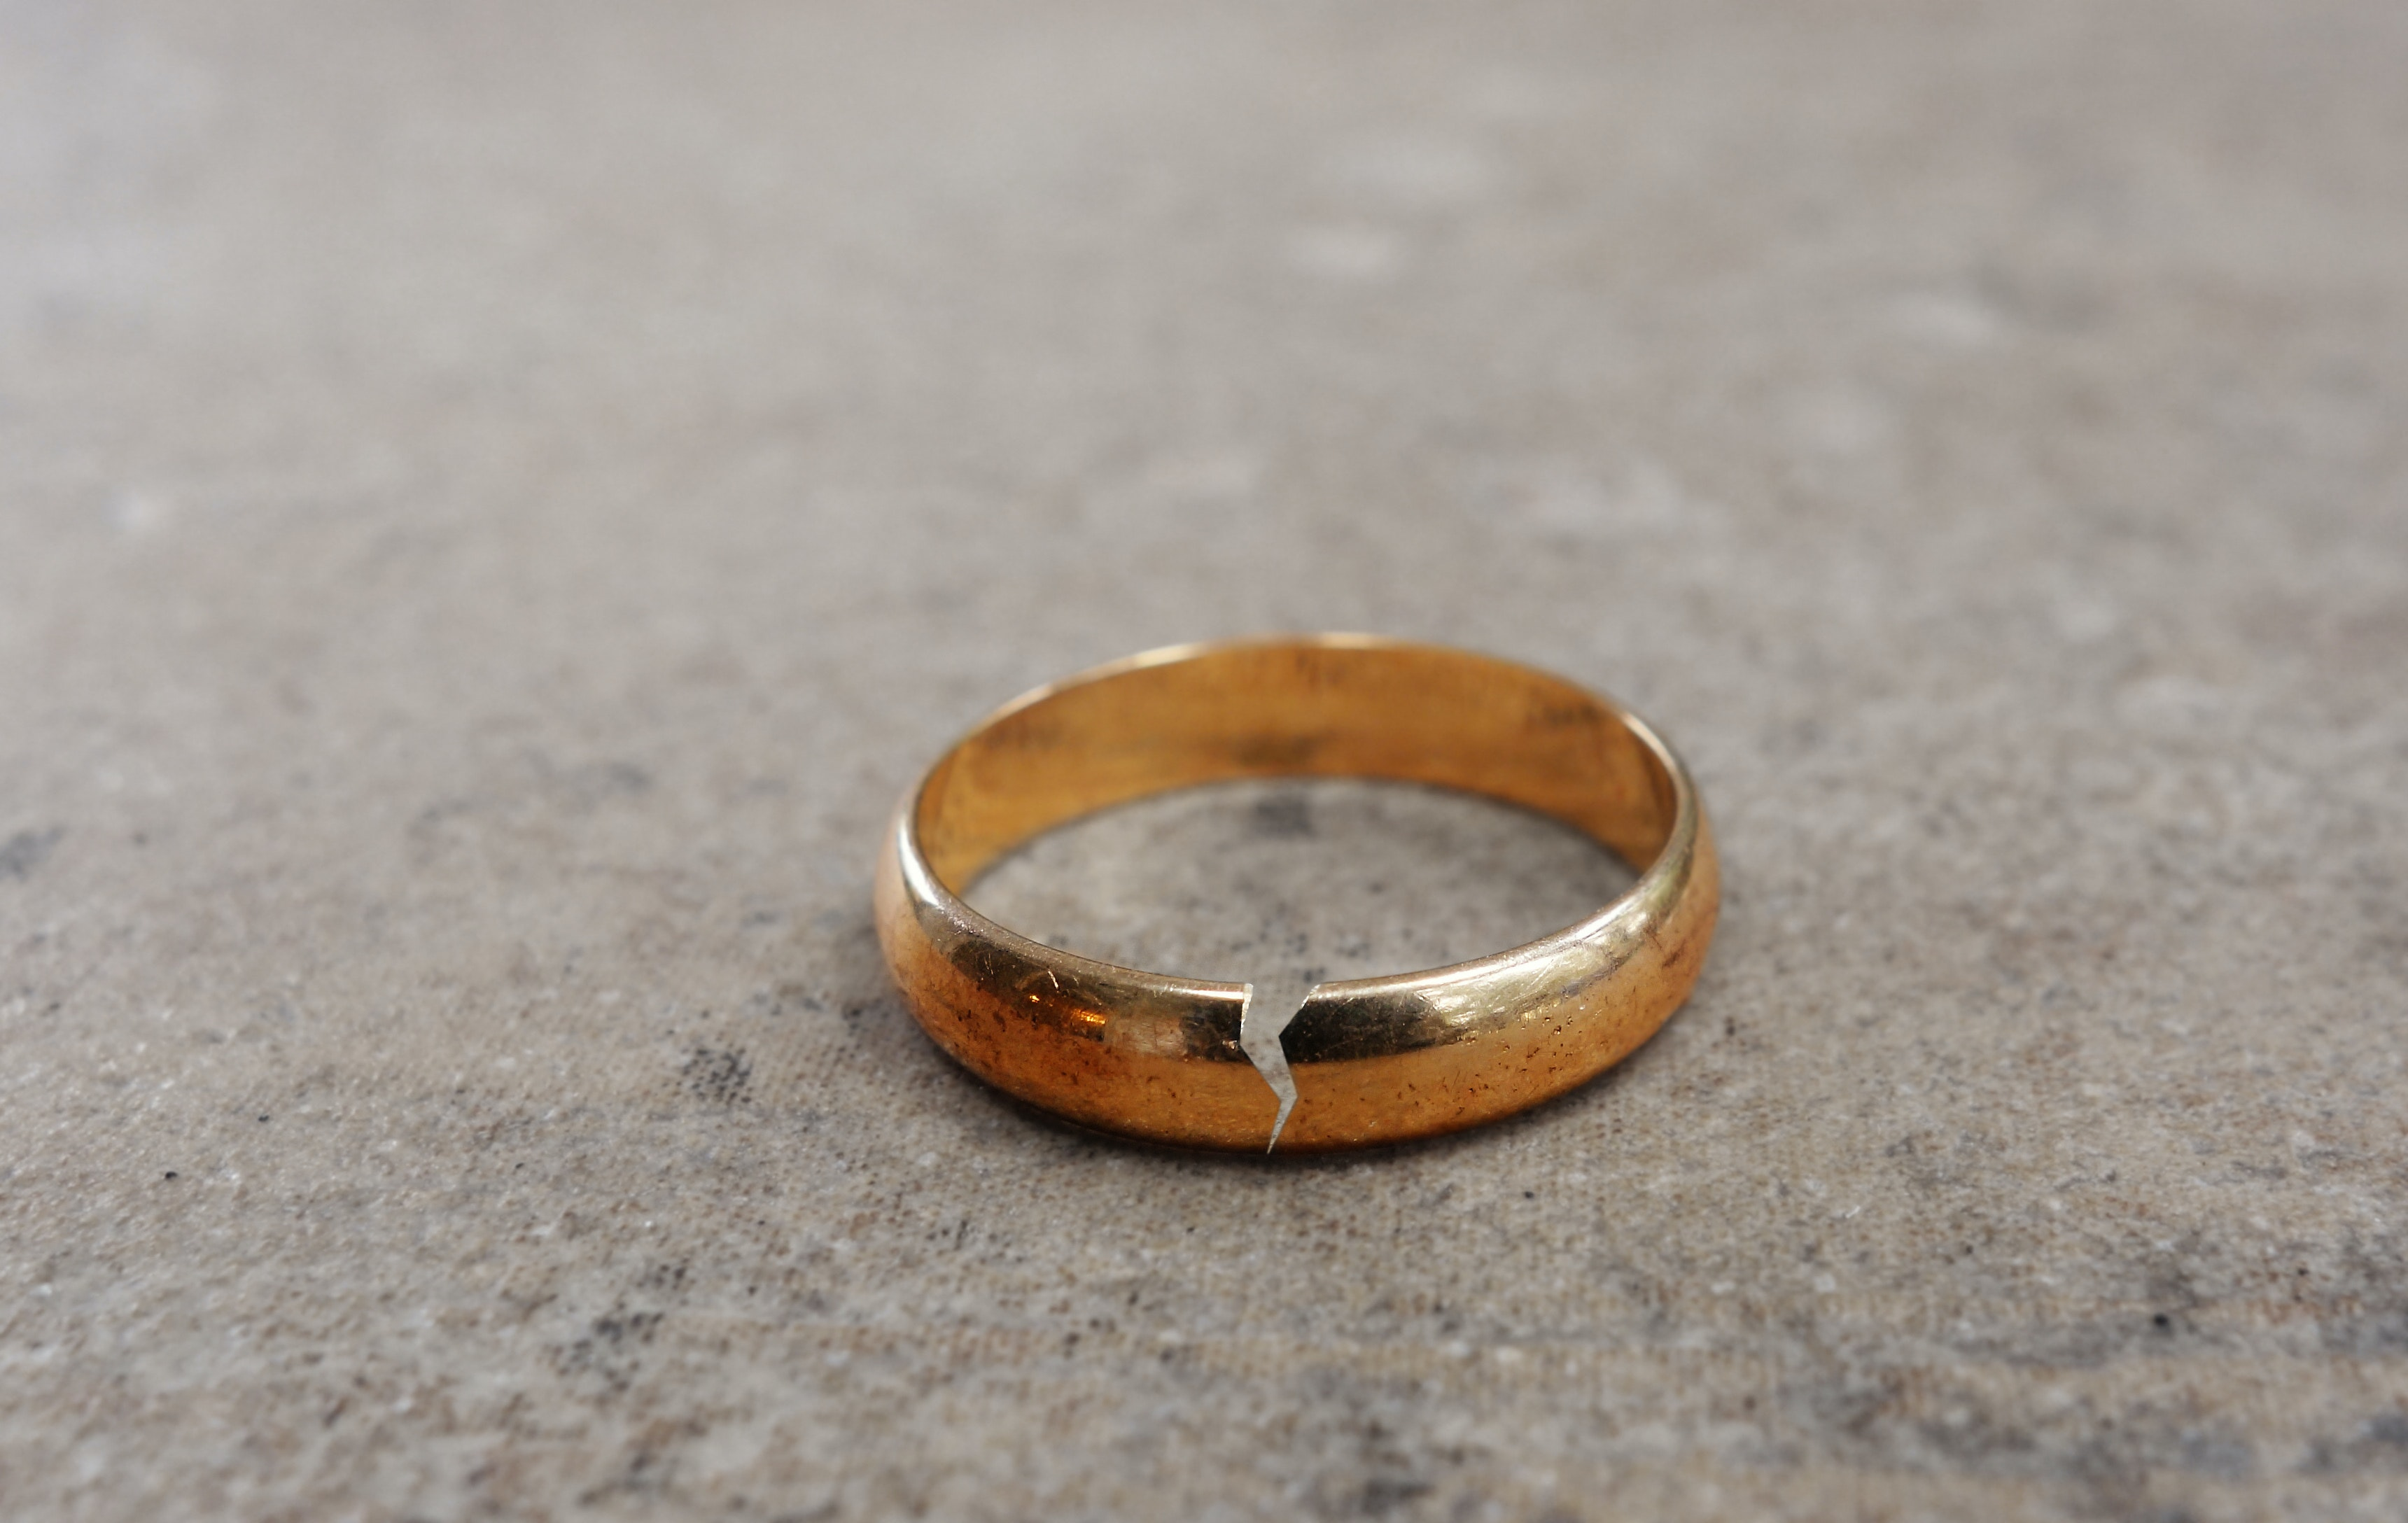 AAFU: How do I let go of my marriage?